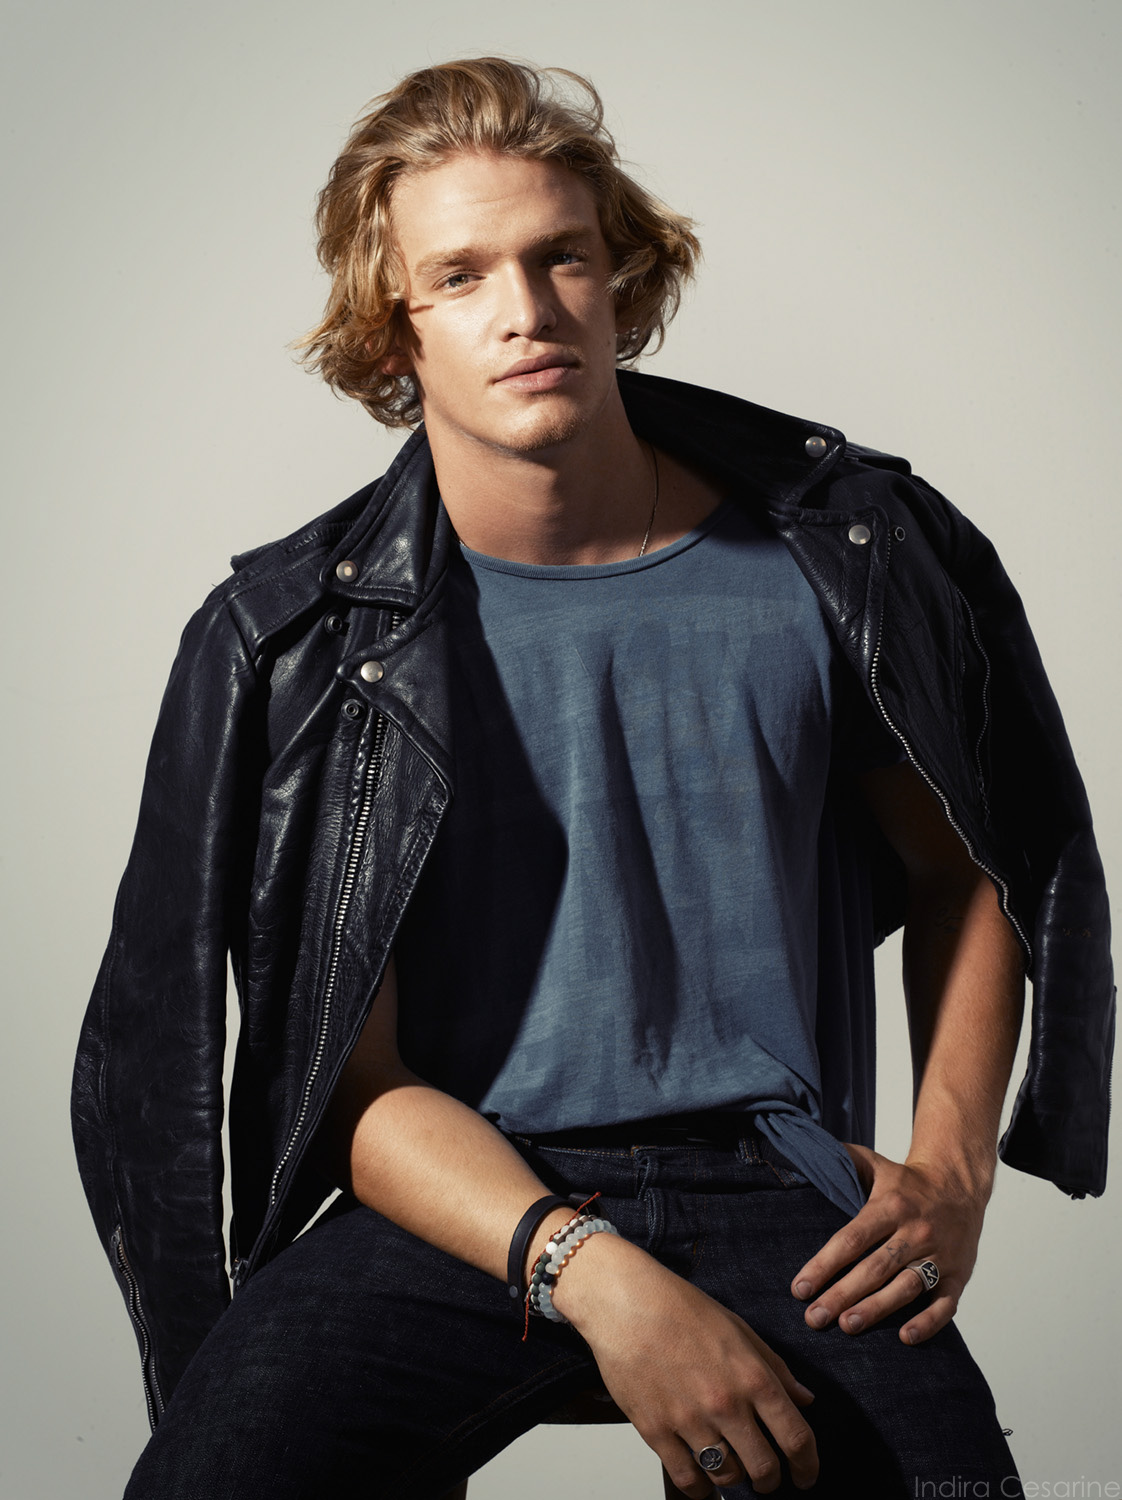 CODY-SIMPSON-The-Untitled-Magazine-Photography-by-Indira-Cesarine-006-1.jpg